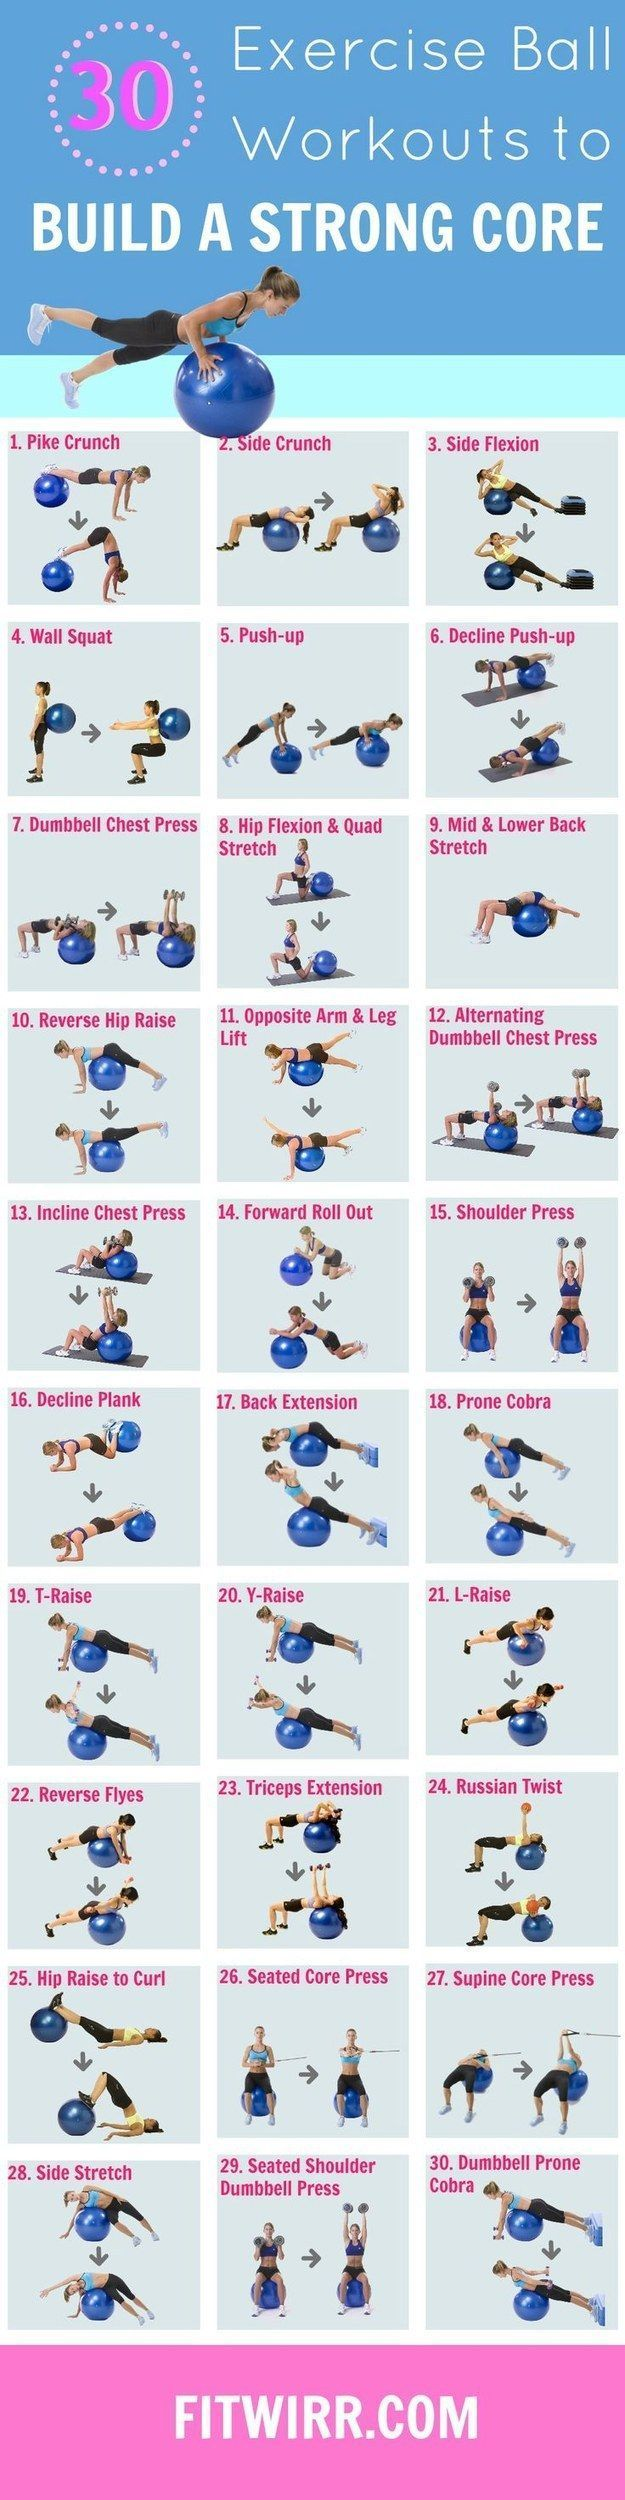 Make your core exercises harder!   29 Diagrams To Help You Get In Shape #fitness